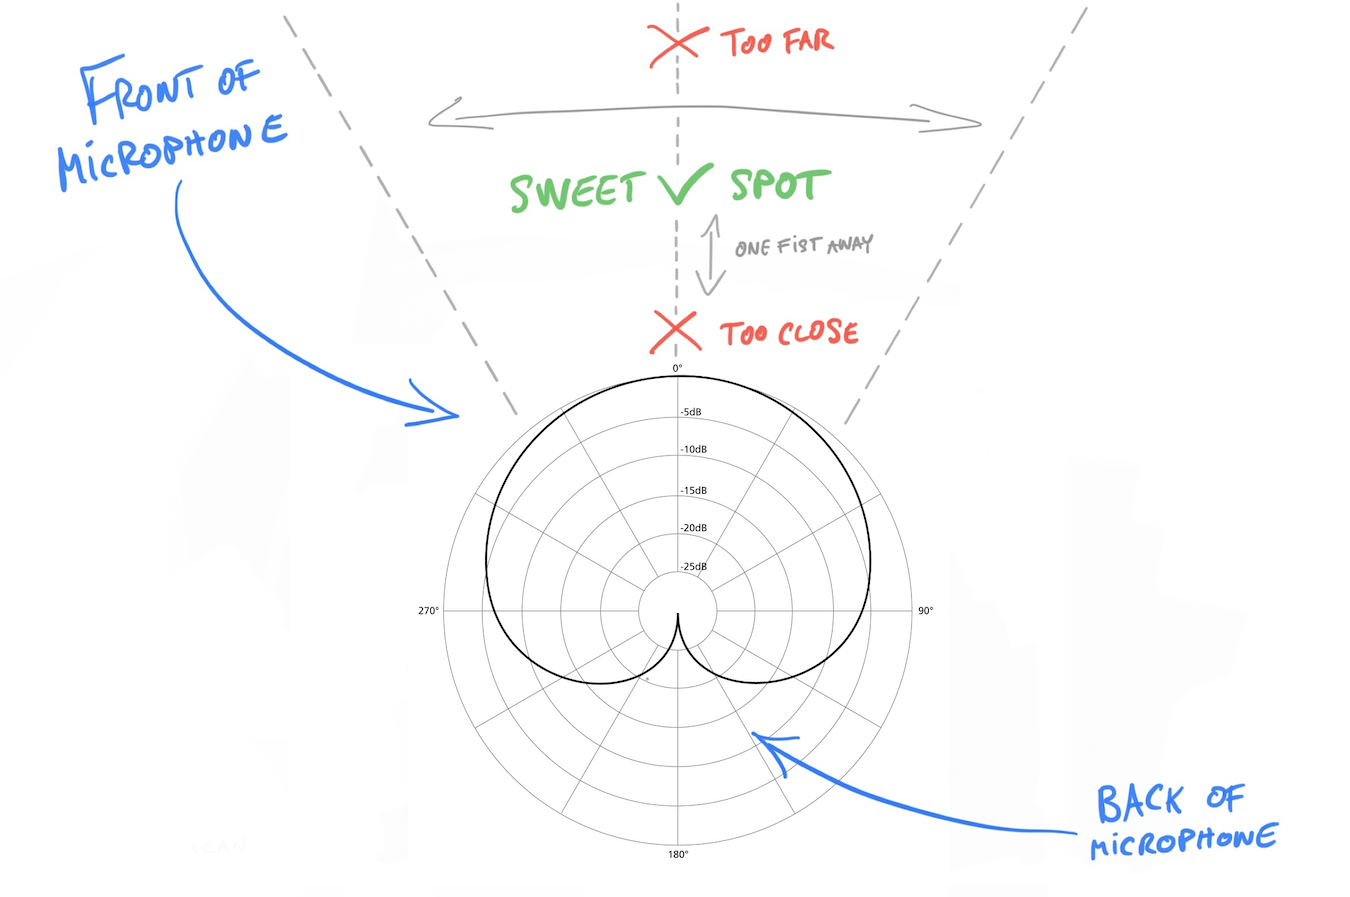 Schematic showing the cardioid polar pattern of a microphone and how the sweet spot for placing one's mouth is roughly a fist away from the front of the microphone and roughly 30 degrees around the center